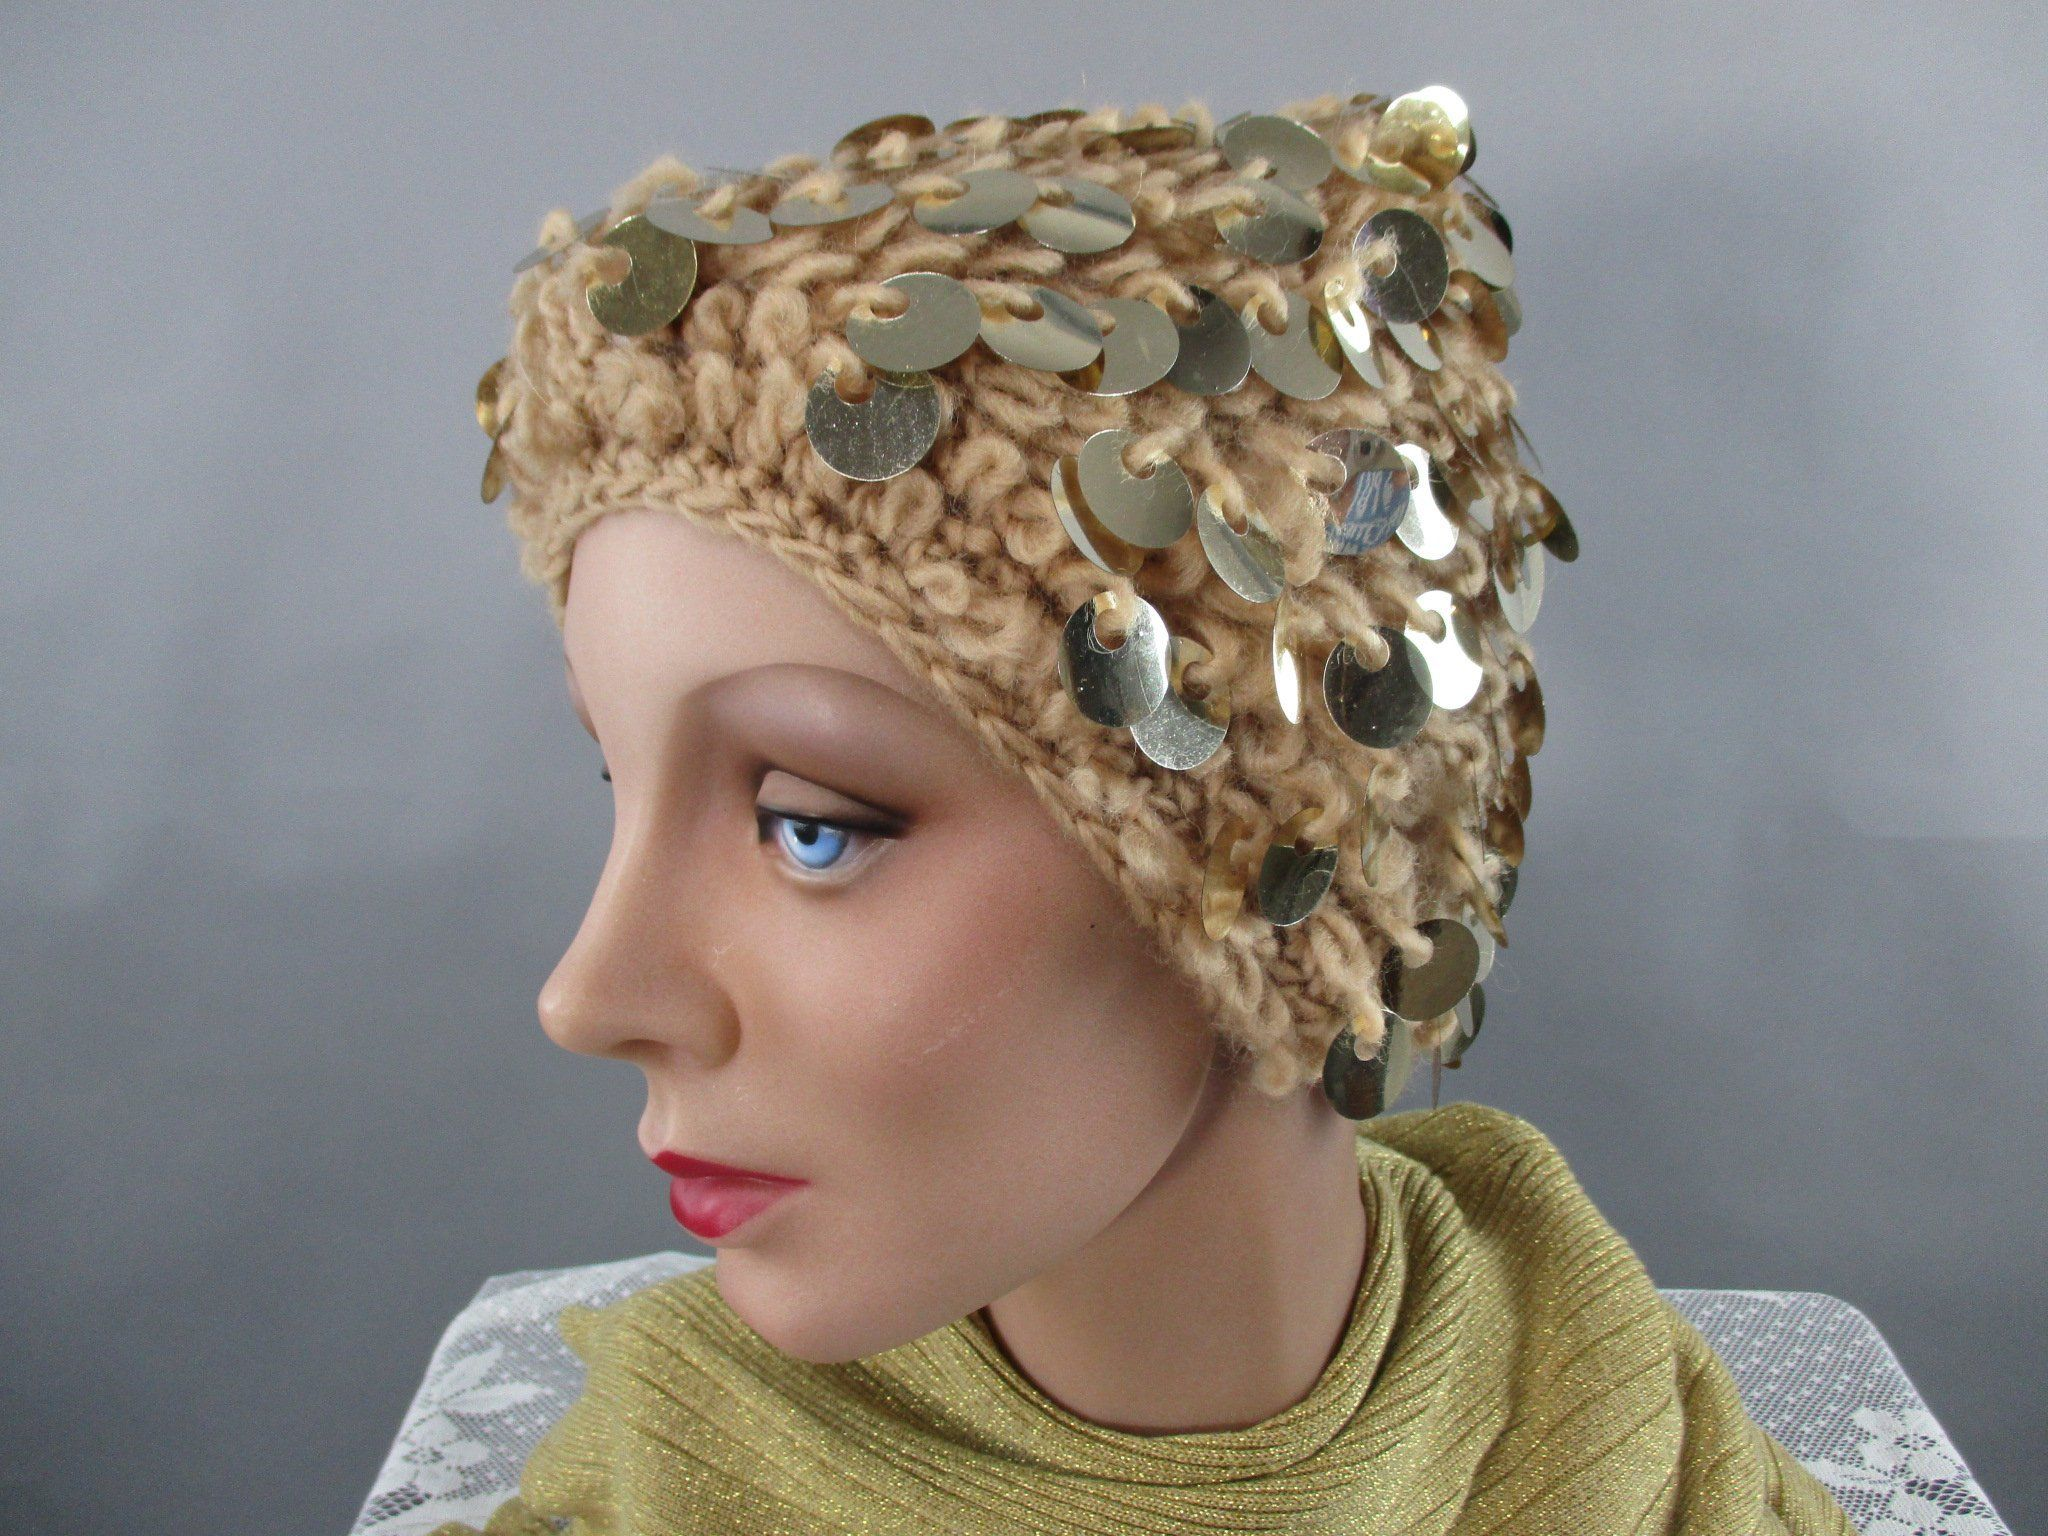 714454c410d604 Vintage Gold Knit Hat, Sequin Crochet 1960s Glam Winter Hat by  LadyScarlettsVintage on Etsy